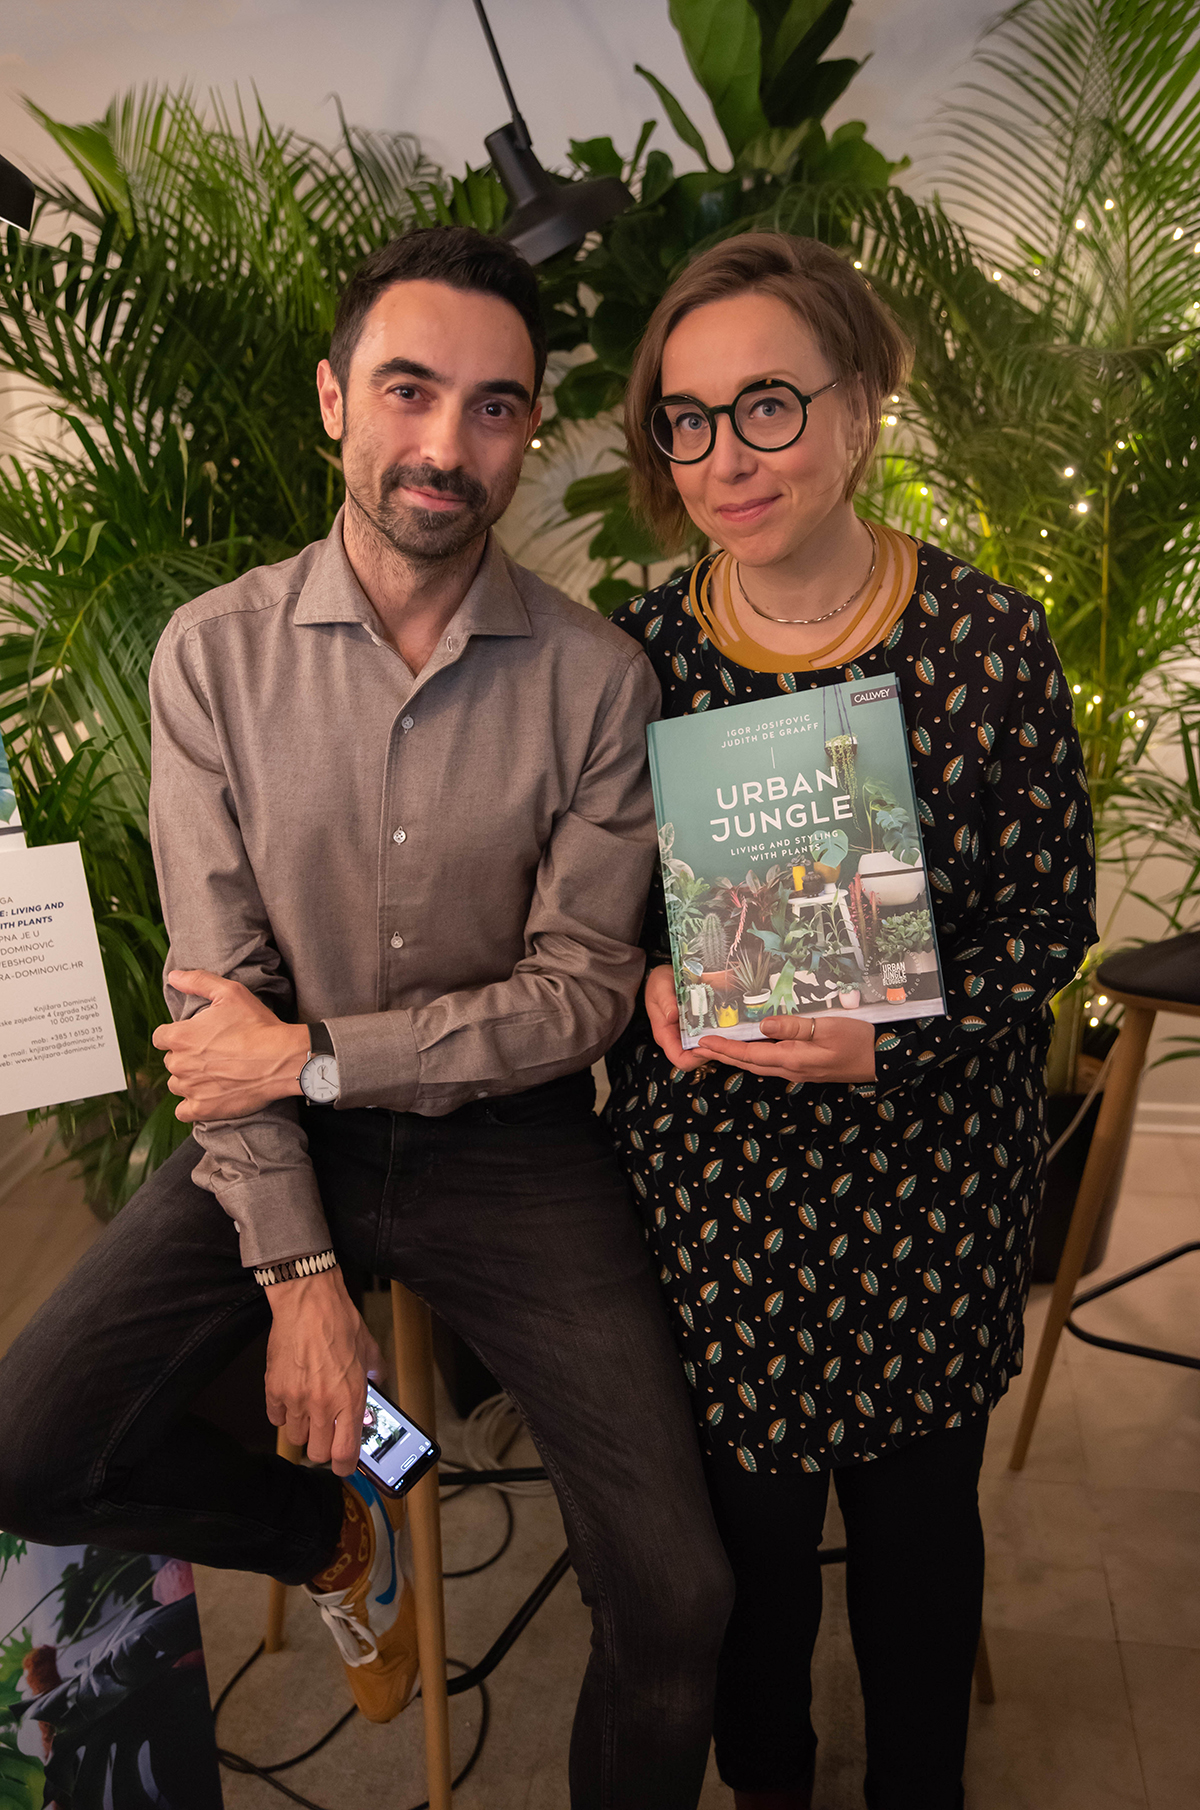 Urban Jungle Bloggers book event in Zagreb Croatia with Dnevna doza biljaka